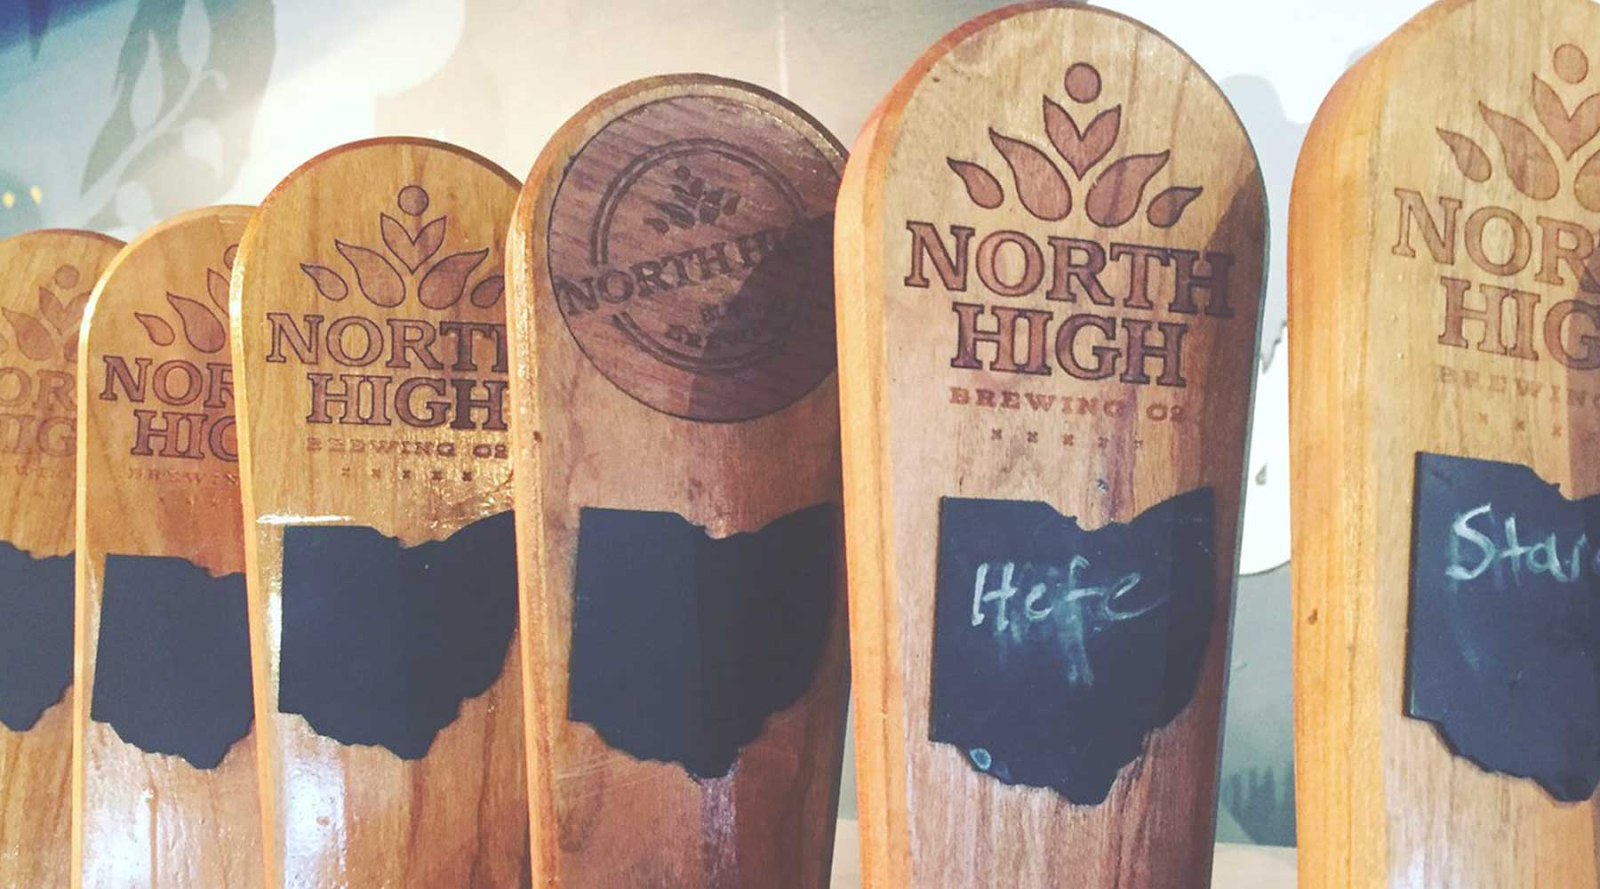 North High Brewing Company branded wooden tap handles